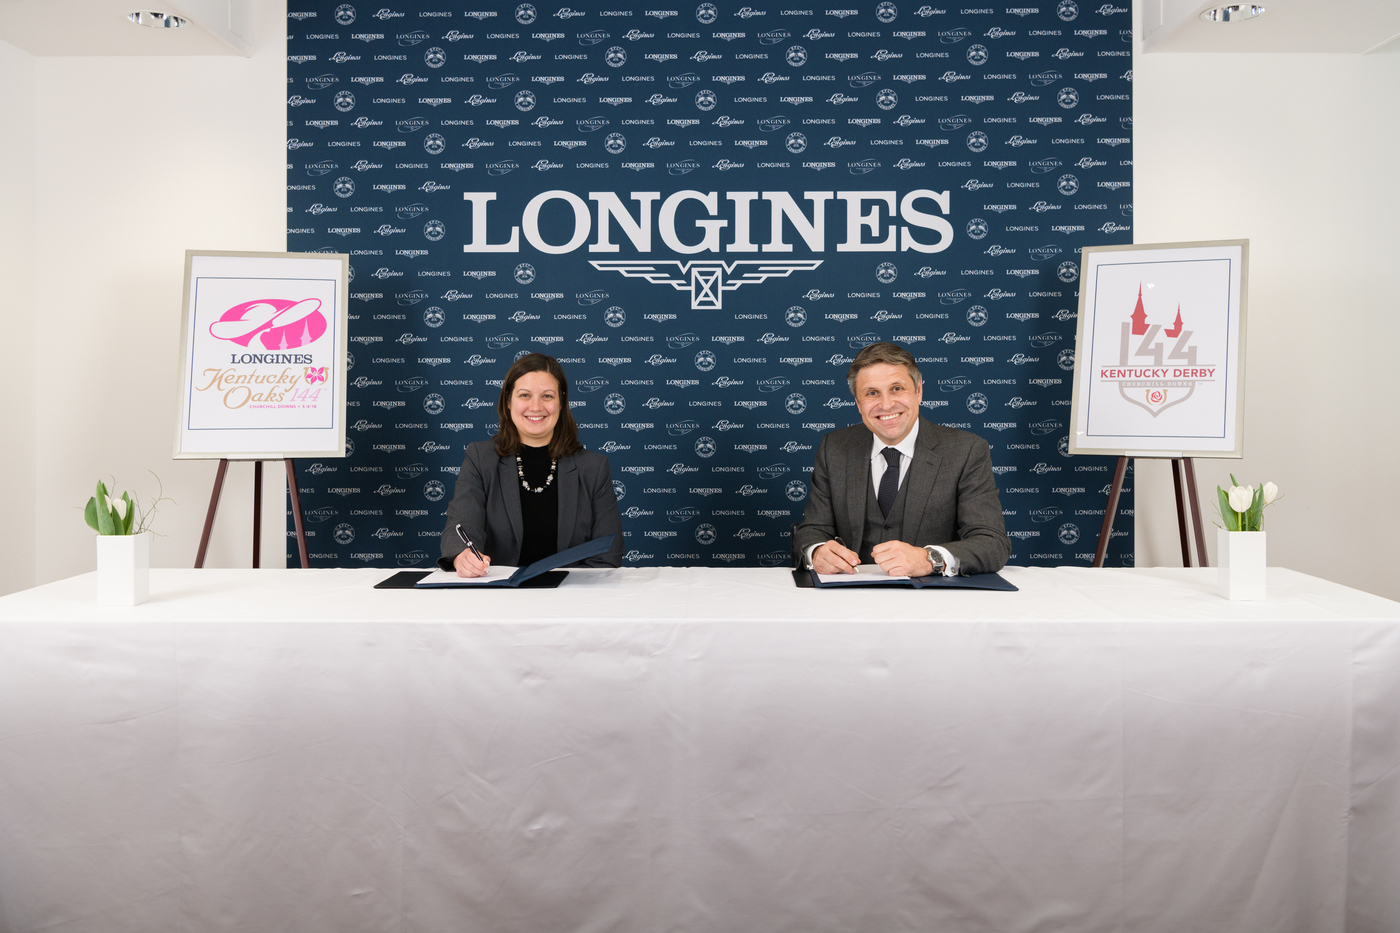 Longines Flat Racing Event: Longines renews its partnership with Churchill Downs as Official Timekeeper of the Kentucky Derby® and unveils the new Longines Kentucky Oaks logo 2